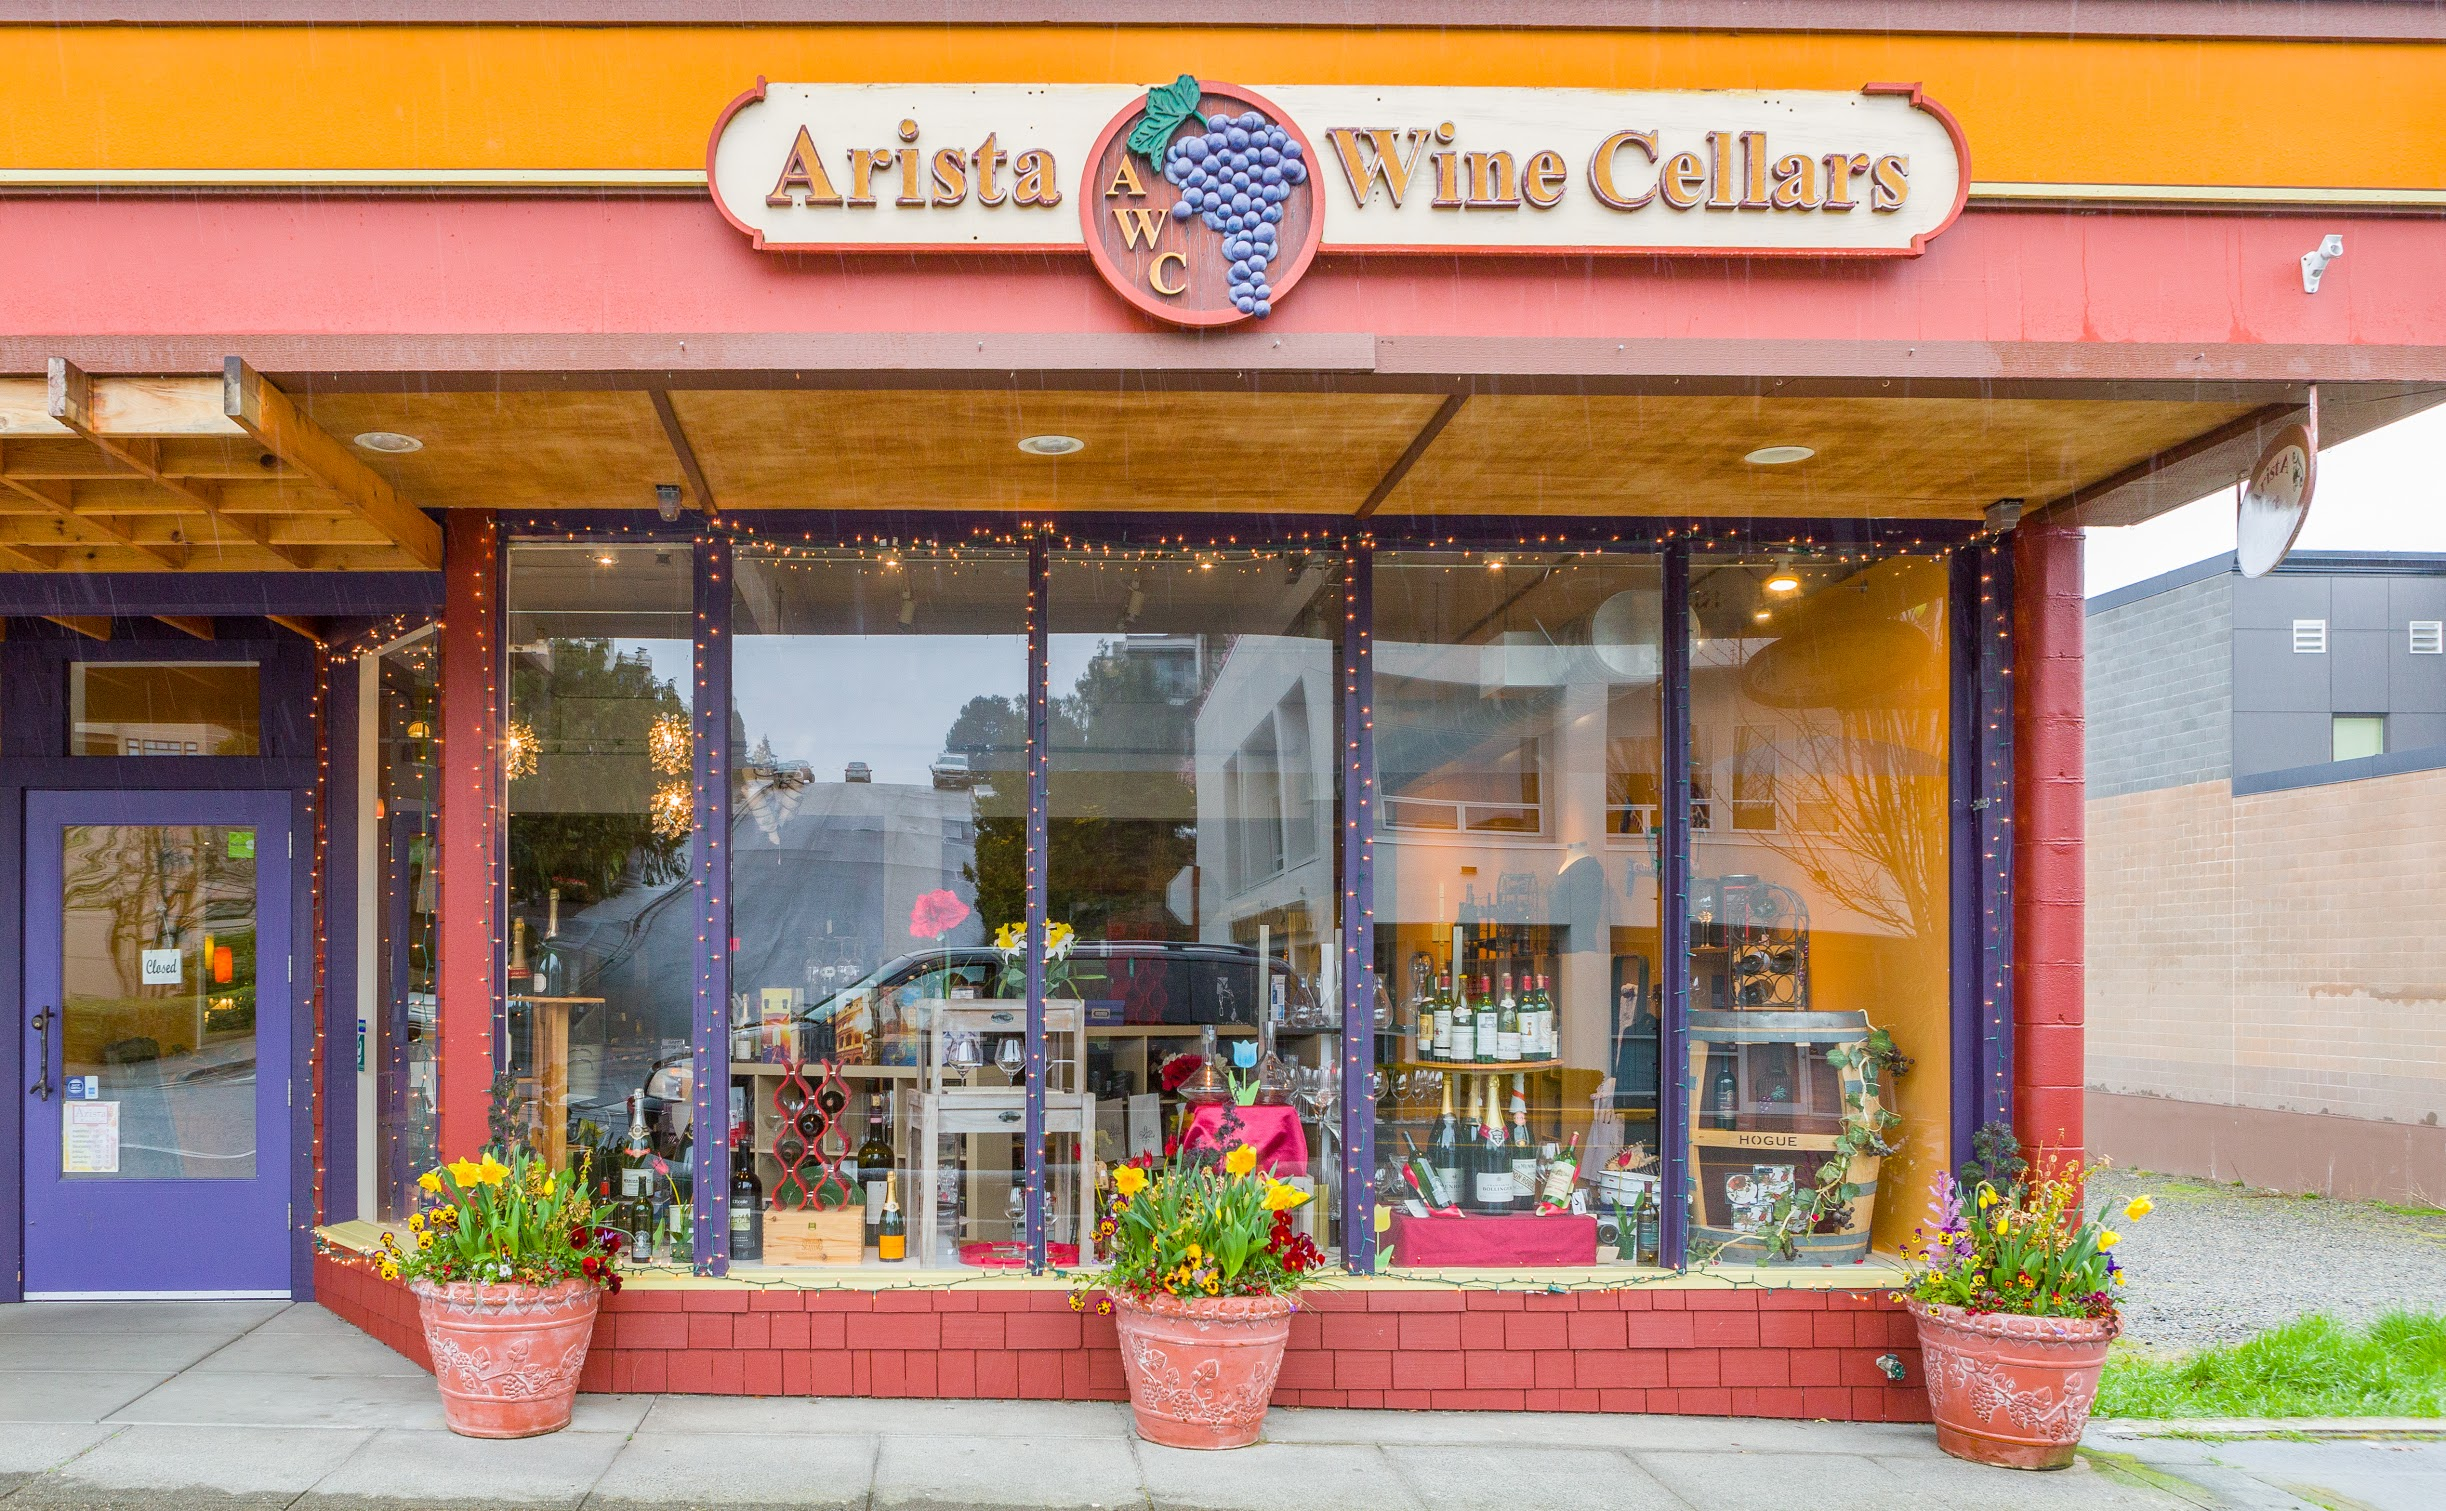 Arista Wine Cellars